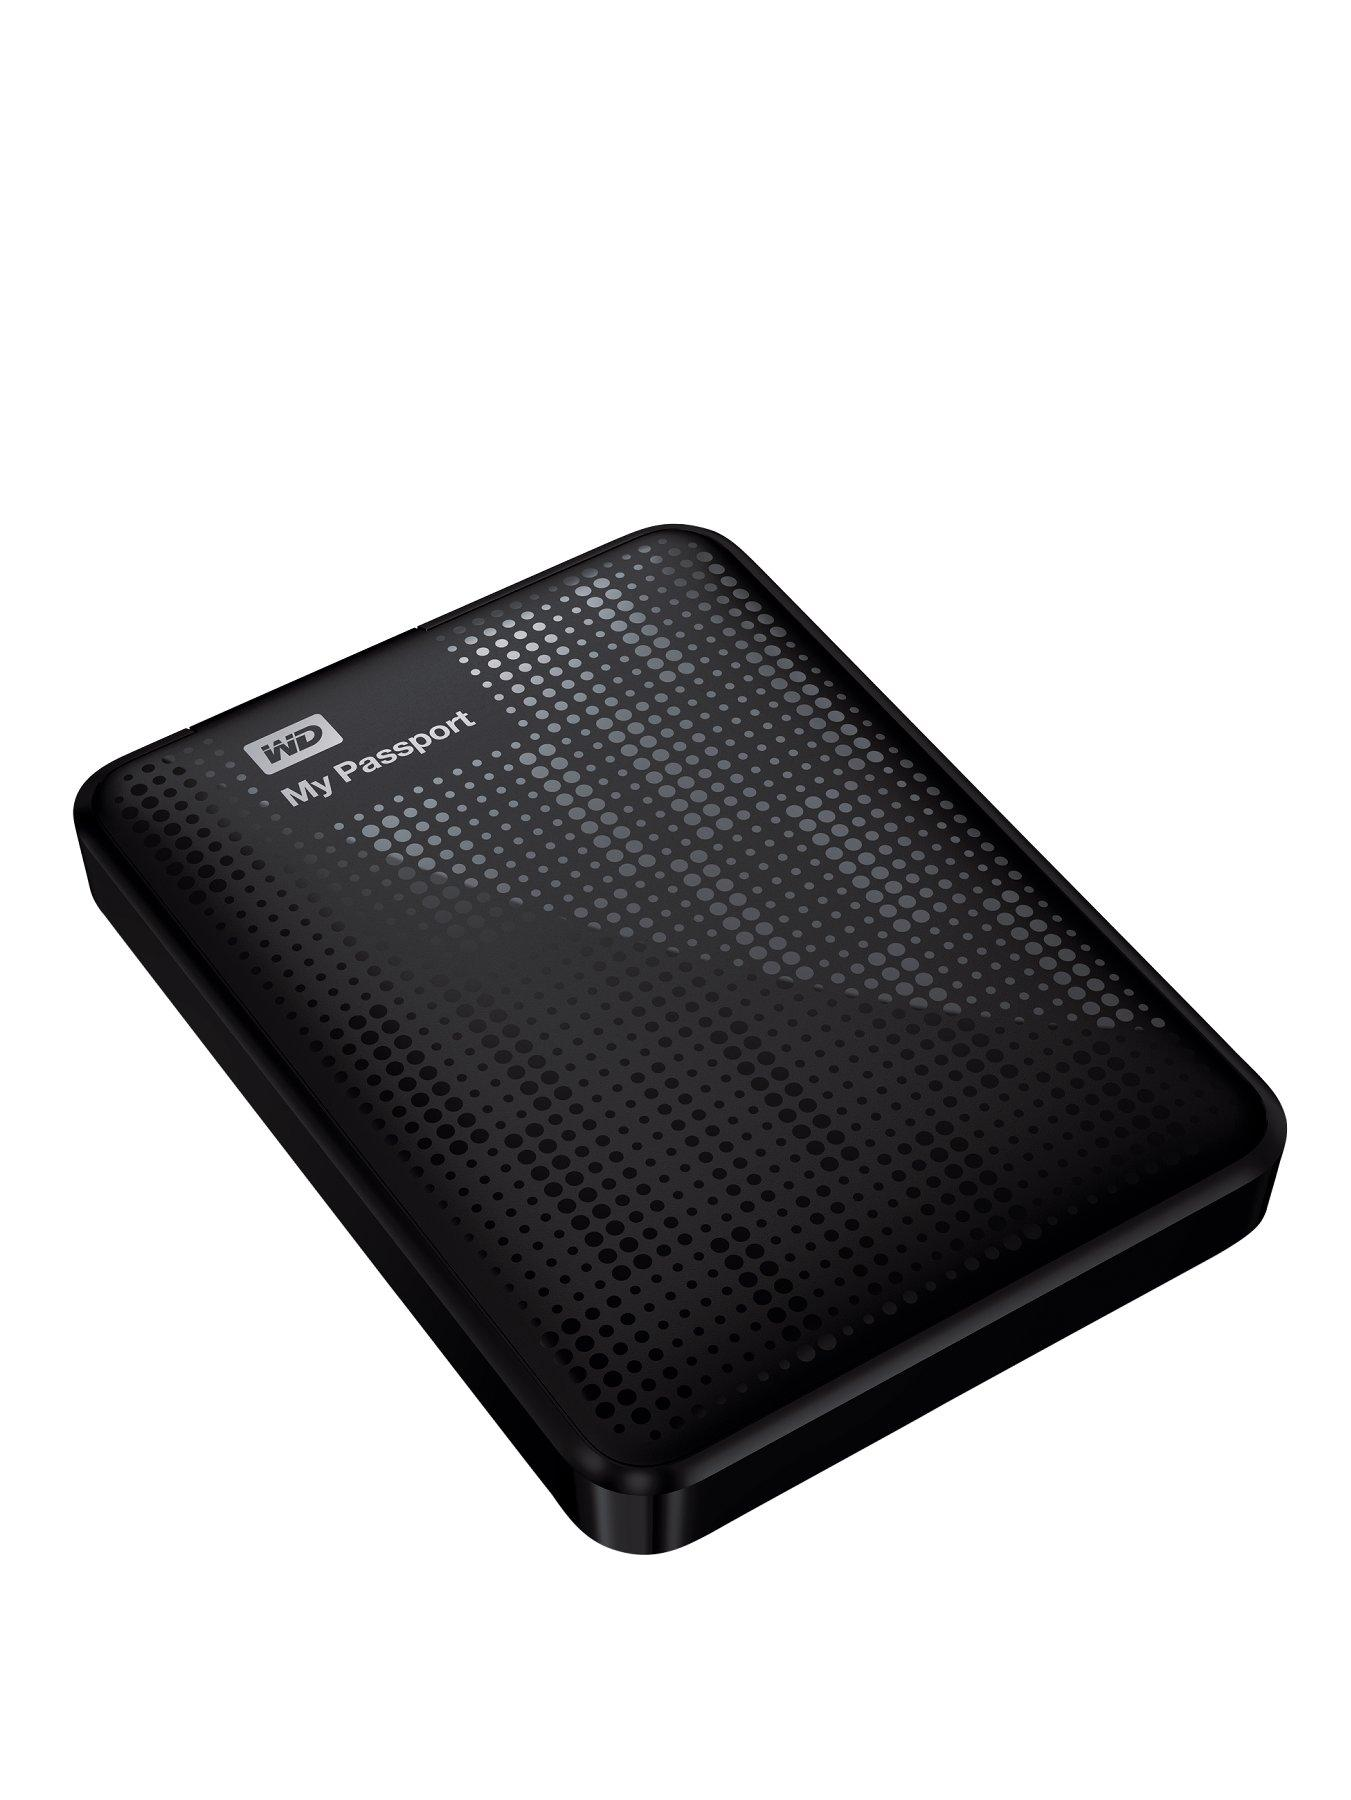 Western Digital My Passport 1Tb Portable Hard Drive - Black, Black